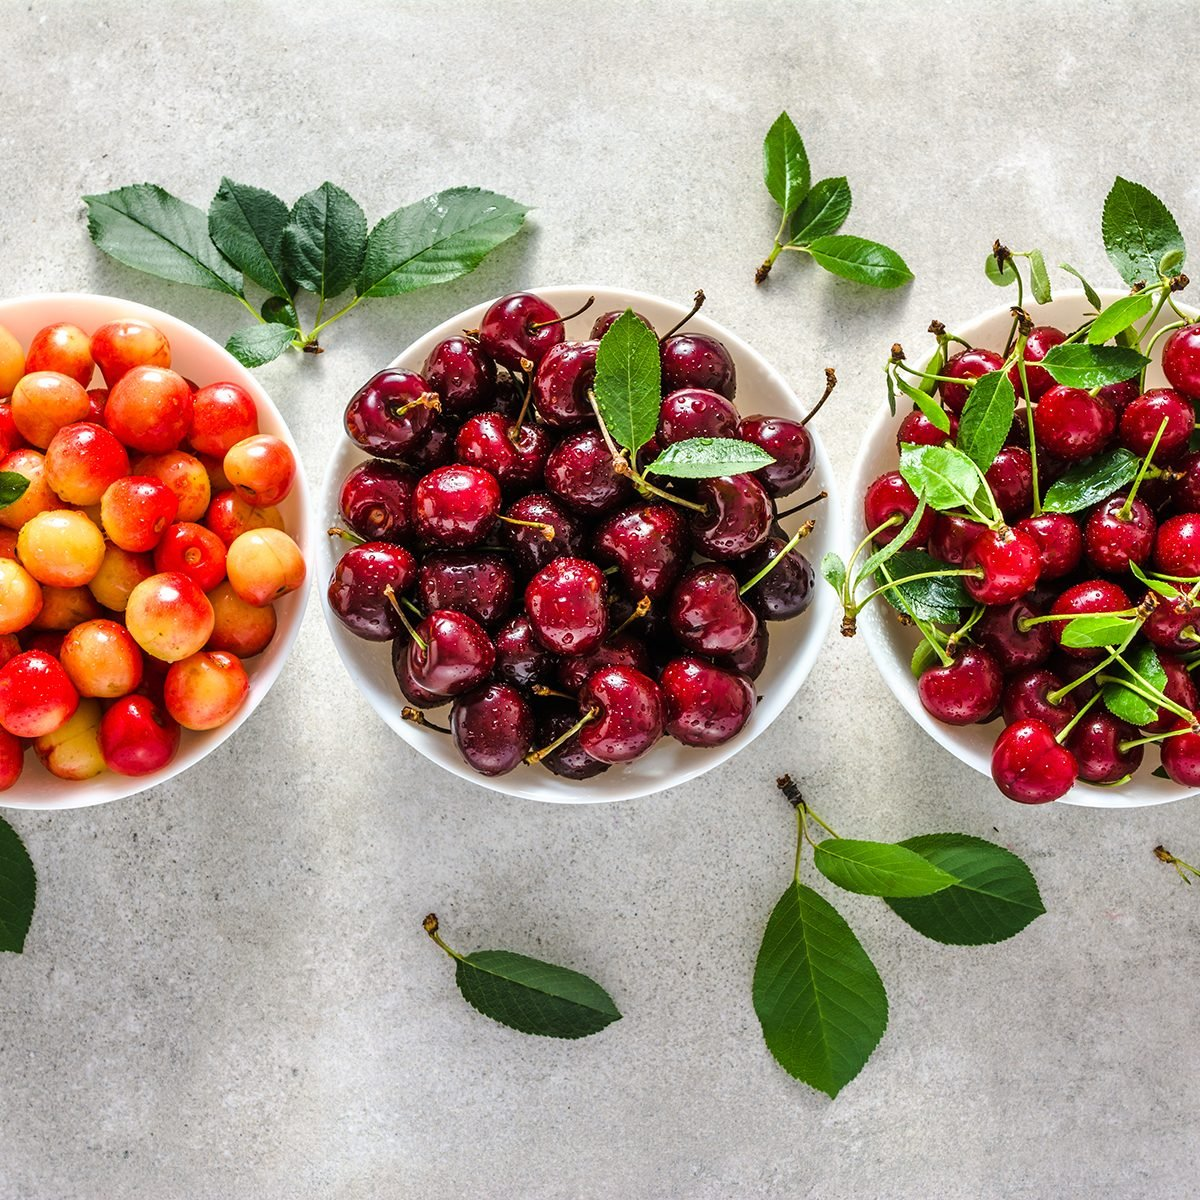 Different cherry on plate on white background, ripe cherries, sweet fruit, top view